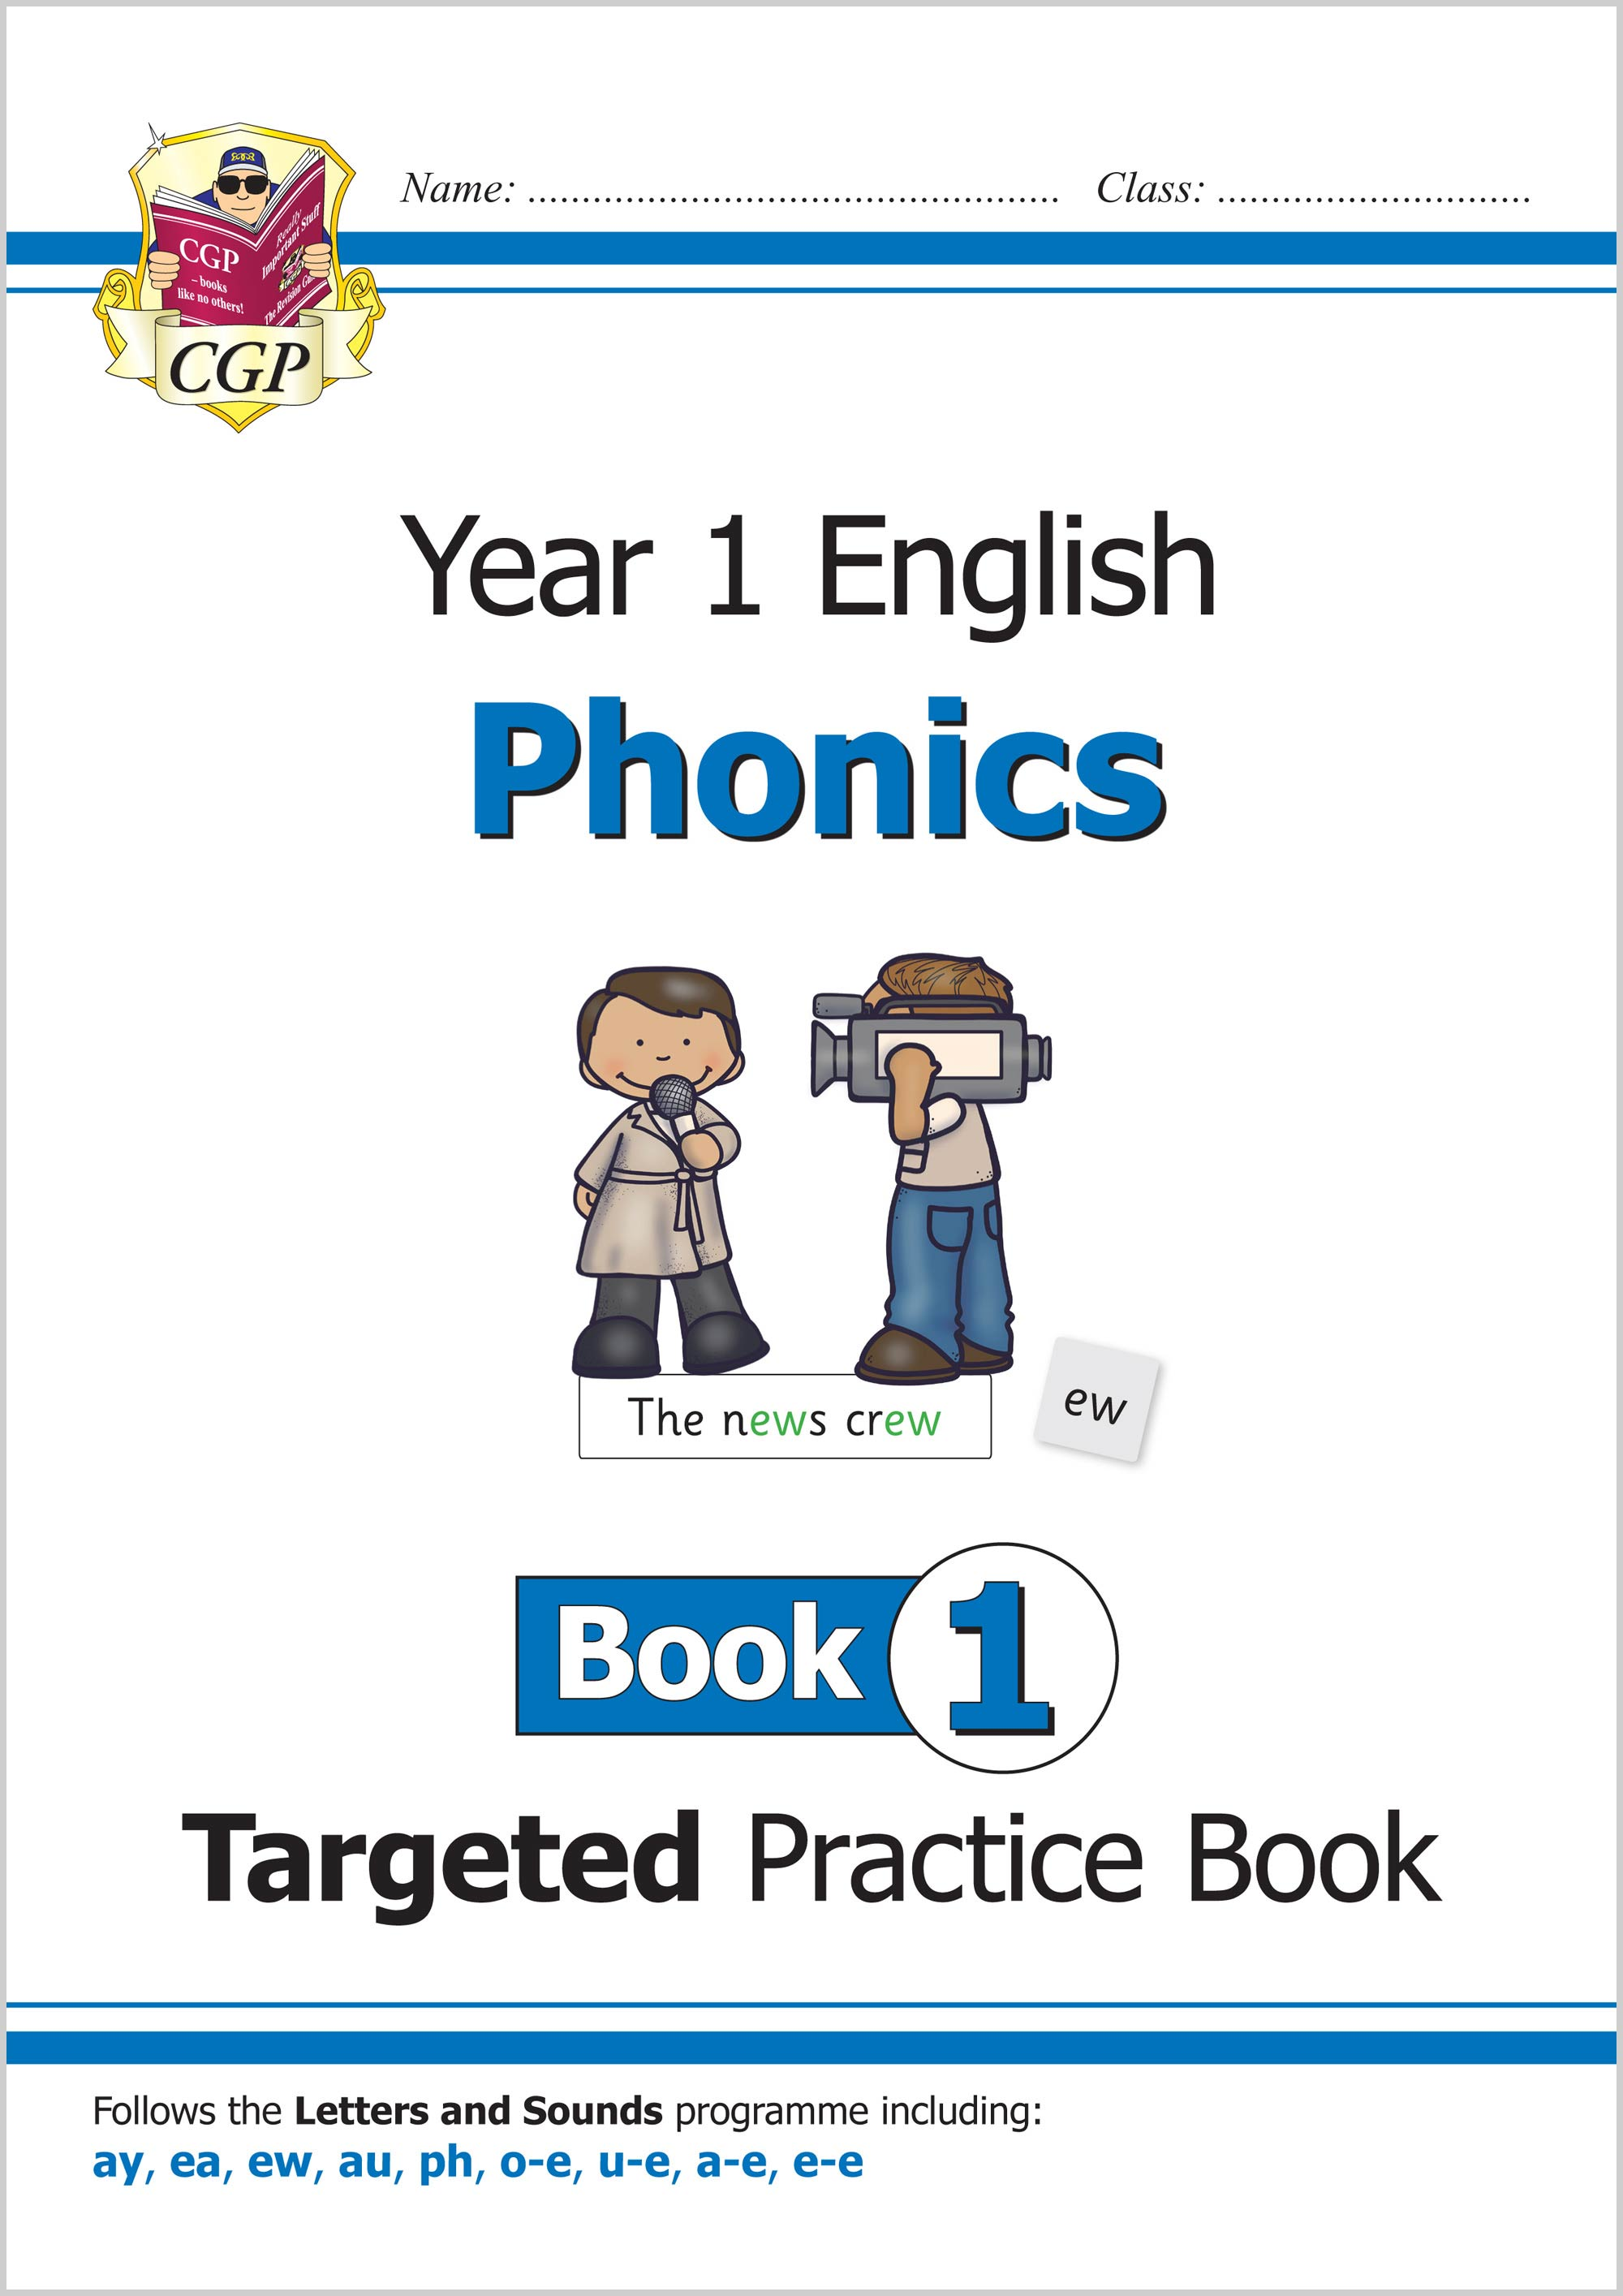 E1OW111 - KS1 English Targeted Practice Book: Phonics - Year 1 Book 1